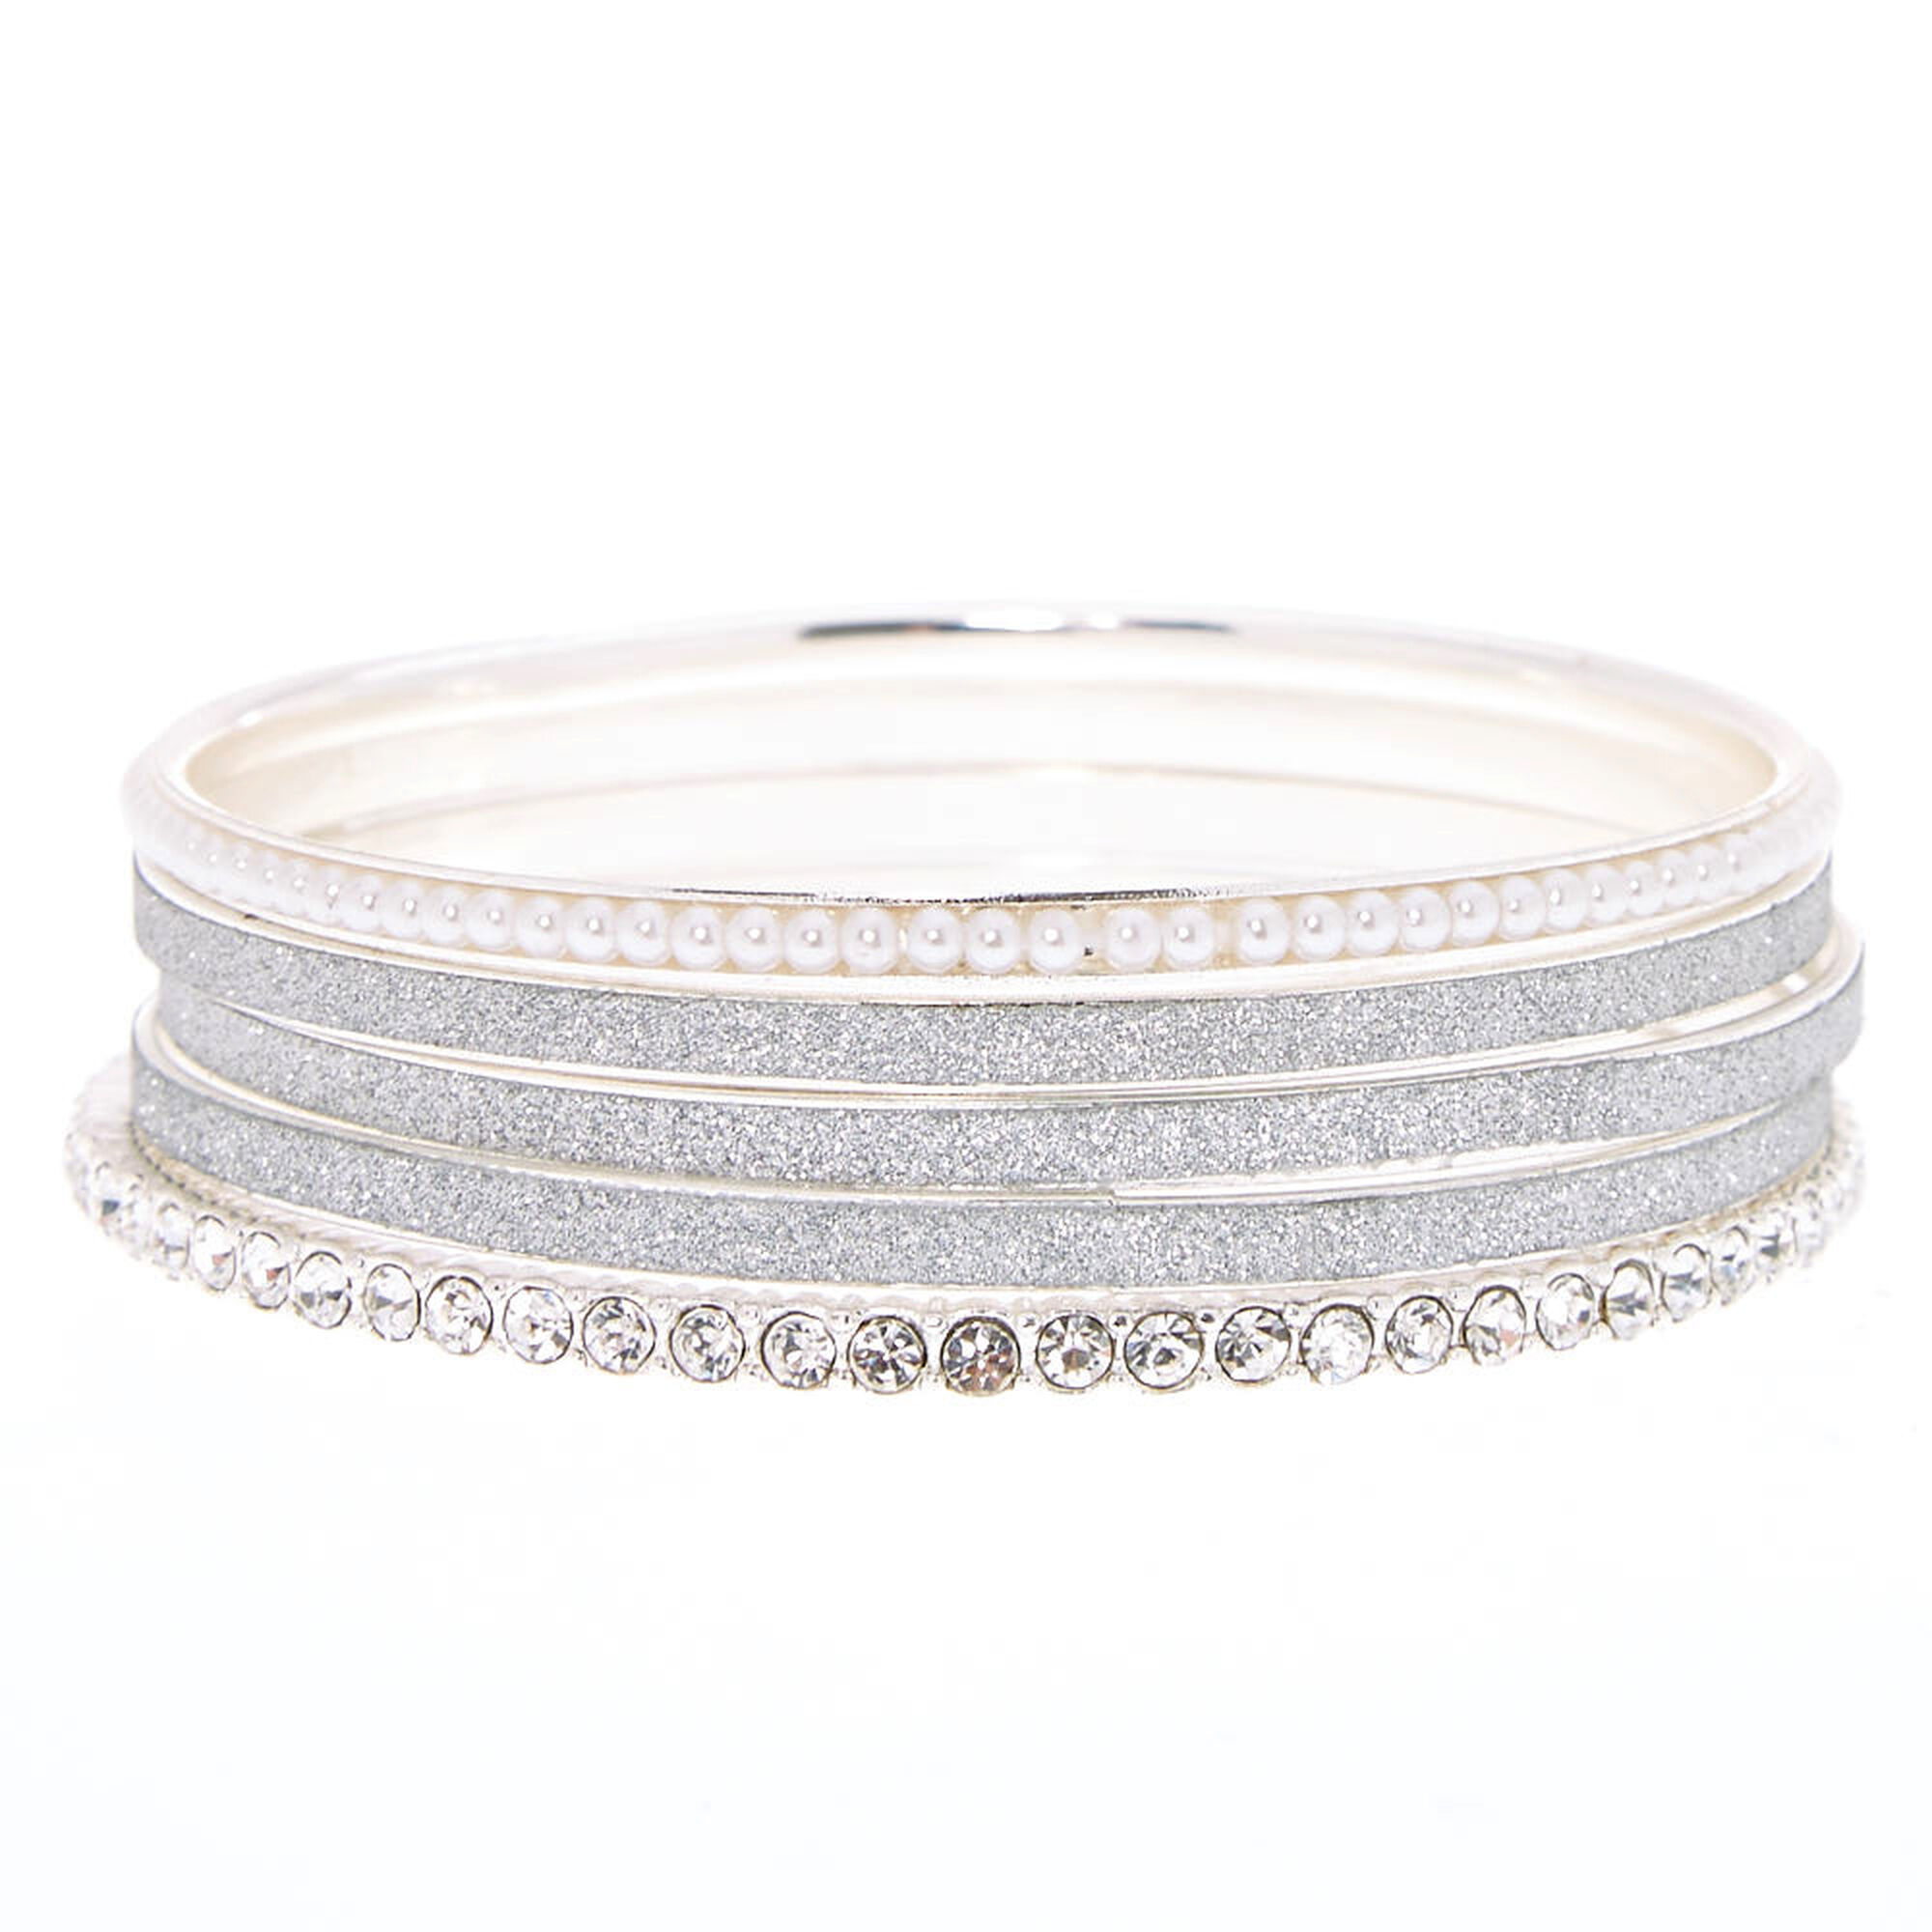 Silver Glitter Pearl Mixed Bangle